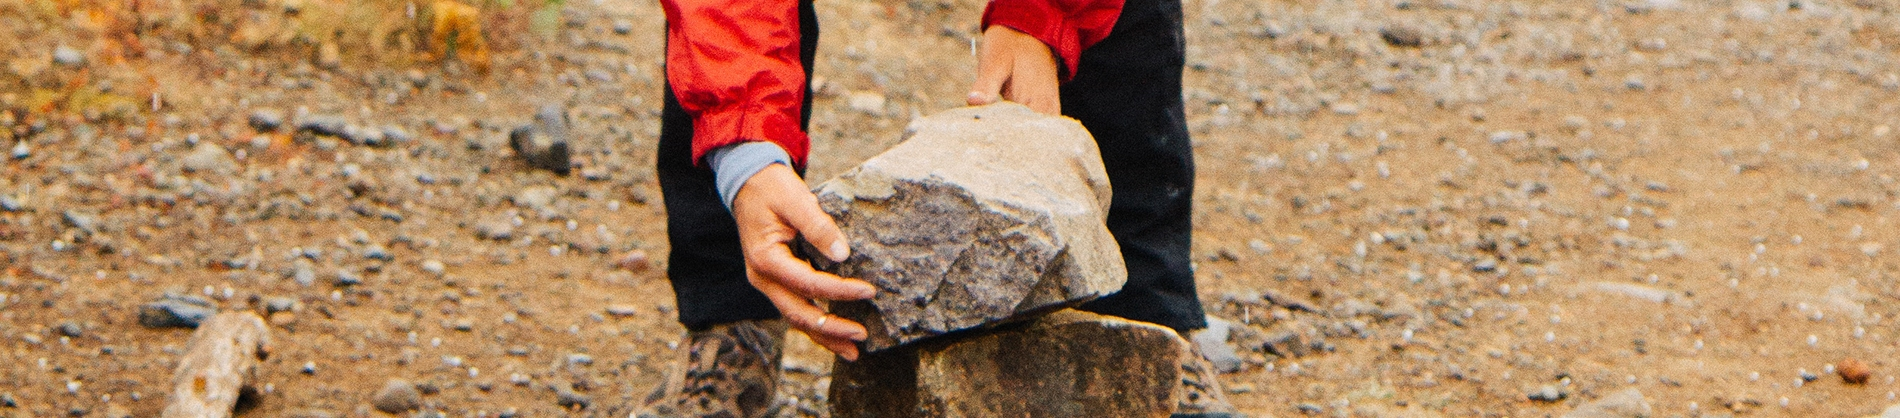 A person picking up a large rock